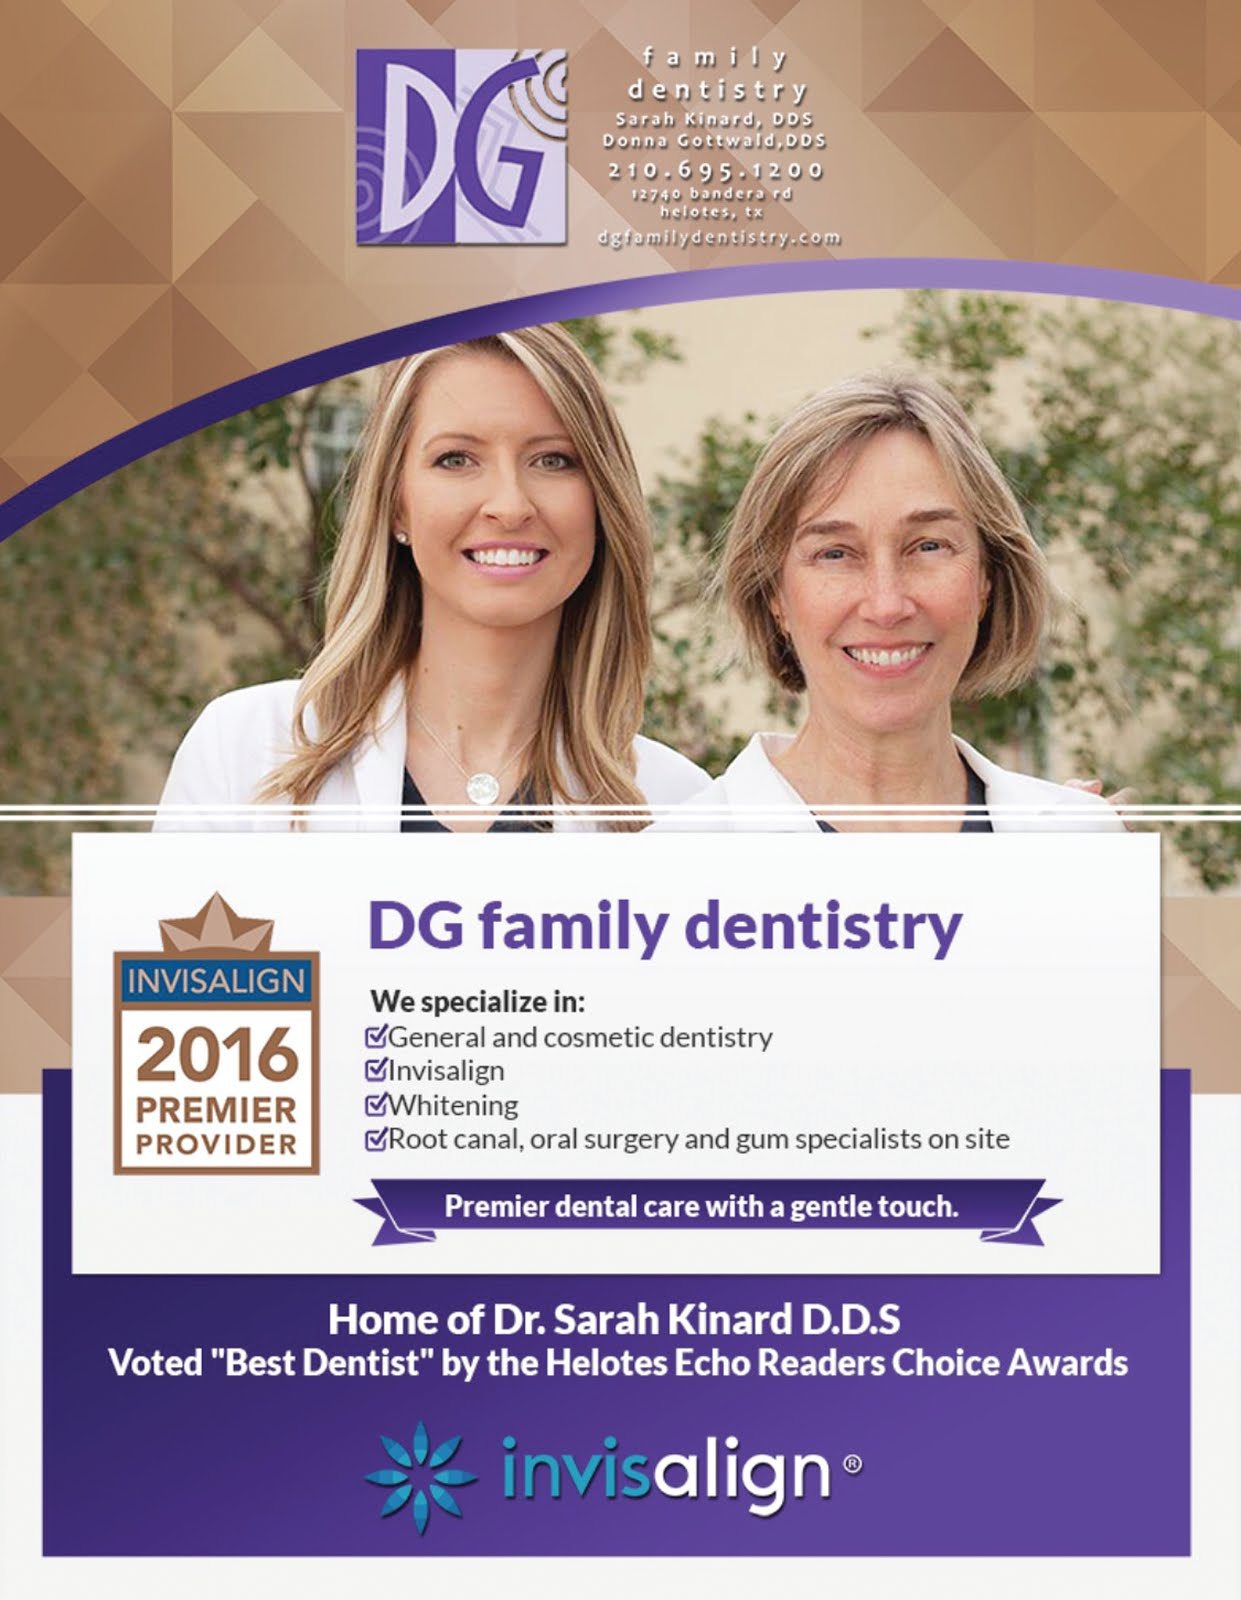 DG Family Dentistry